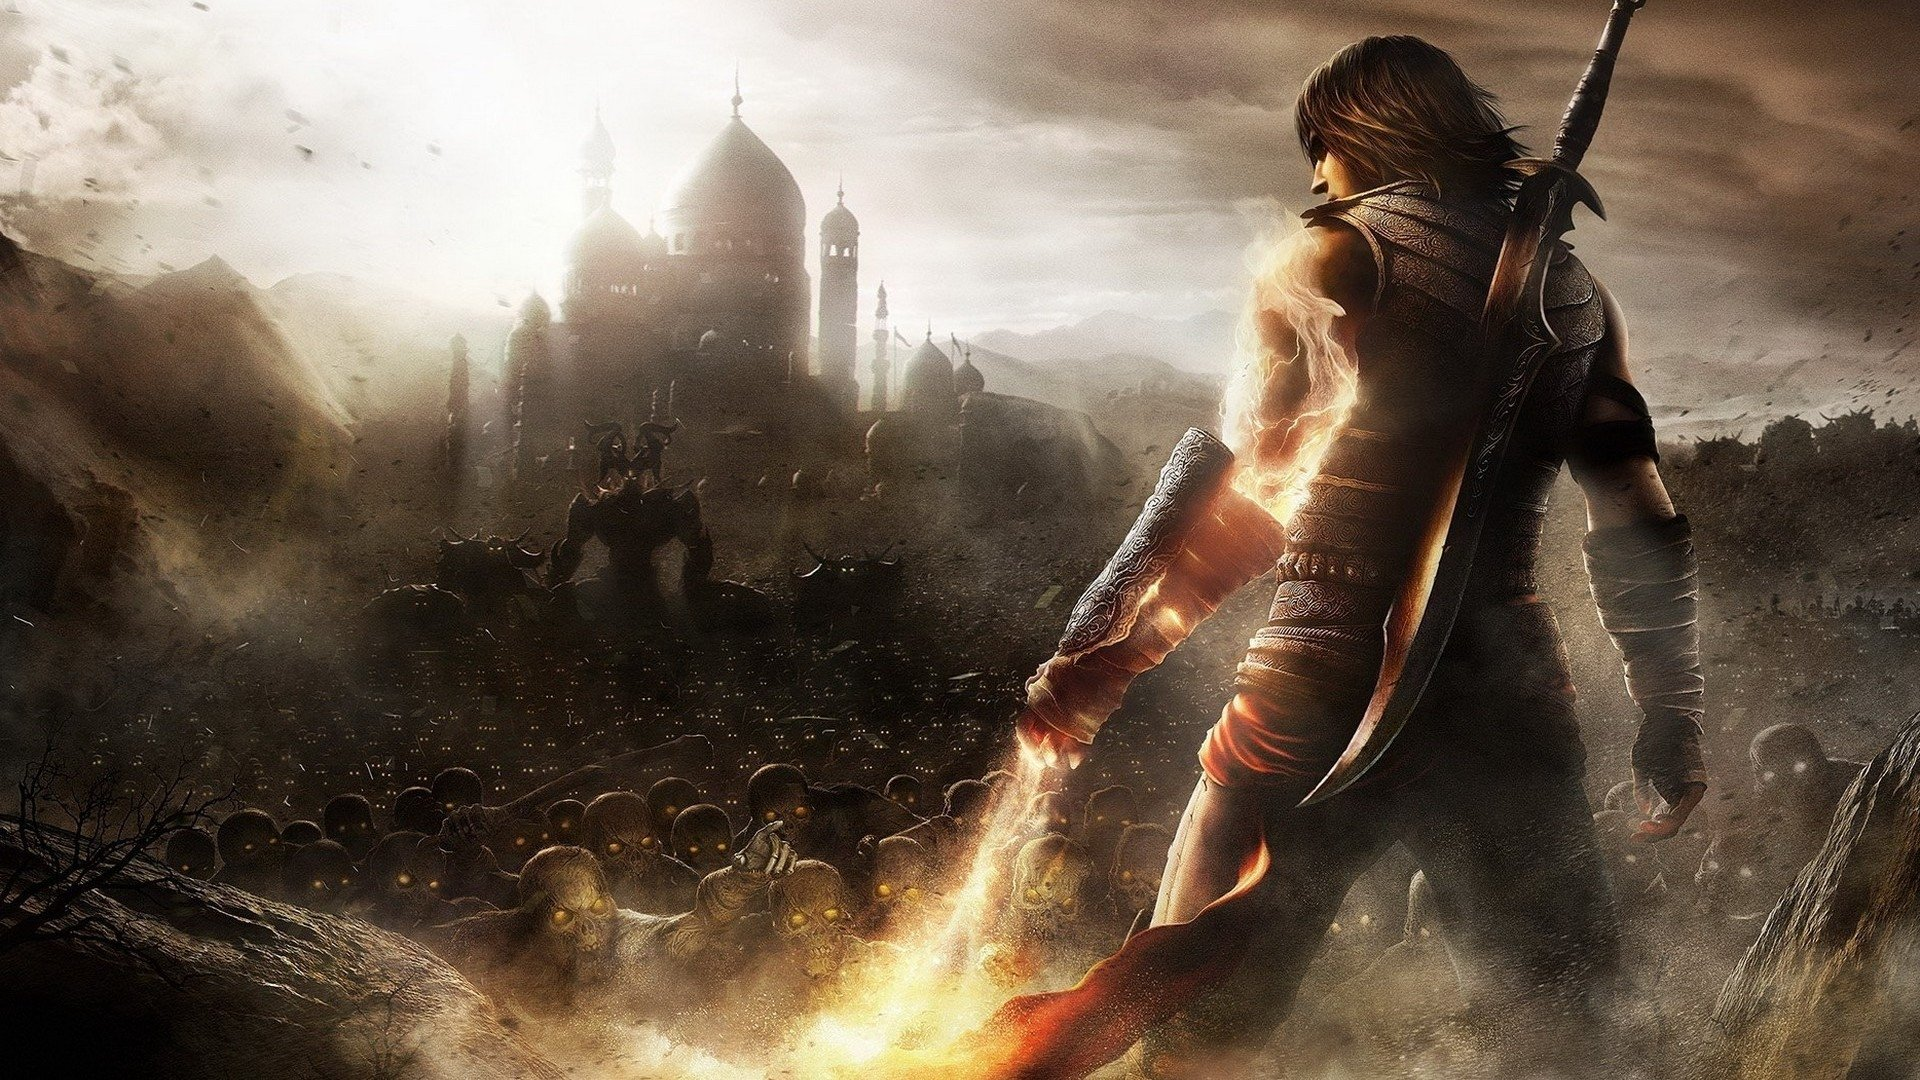 Datorspel - Prince Of Persia: The Forgotten Sands   Bakgrund